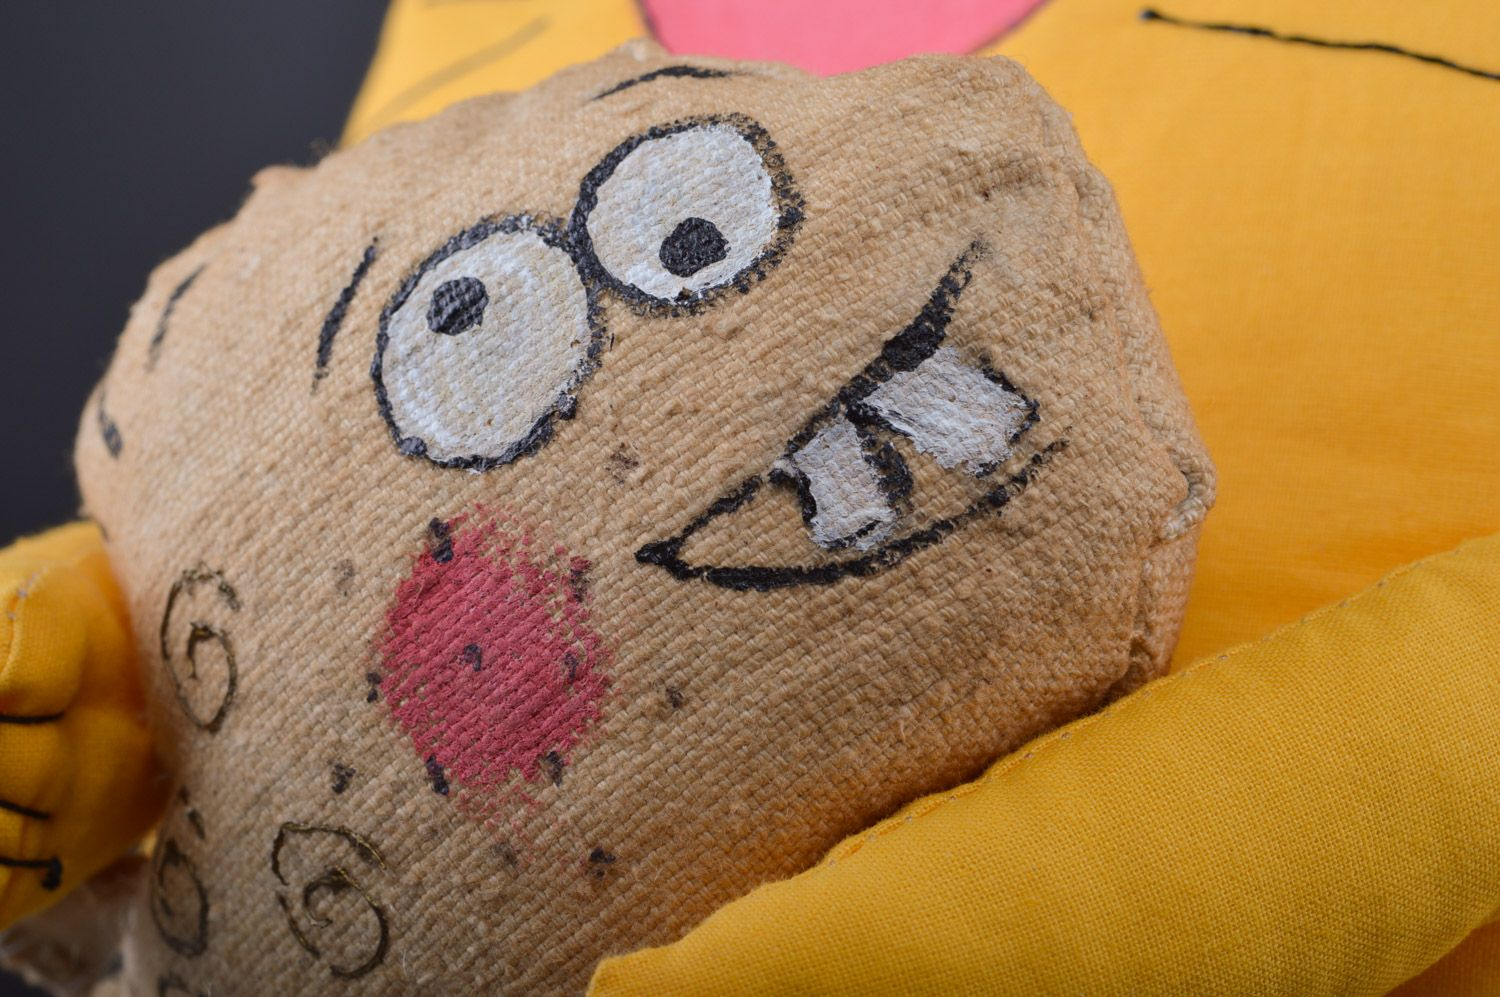 Large handmade aroma sachet pillow yellow toy cat with herbs inside photo 3